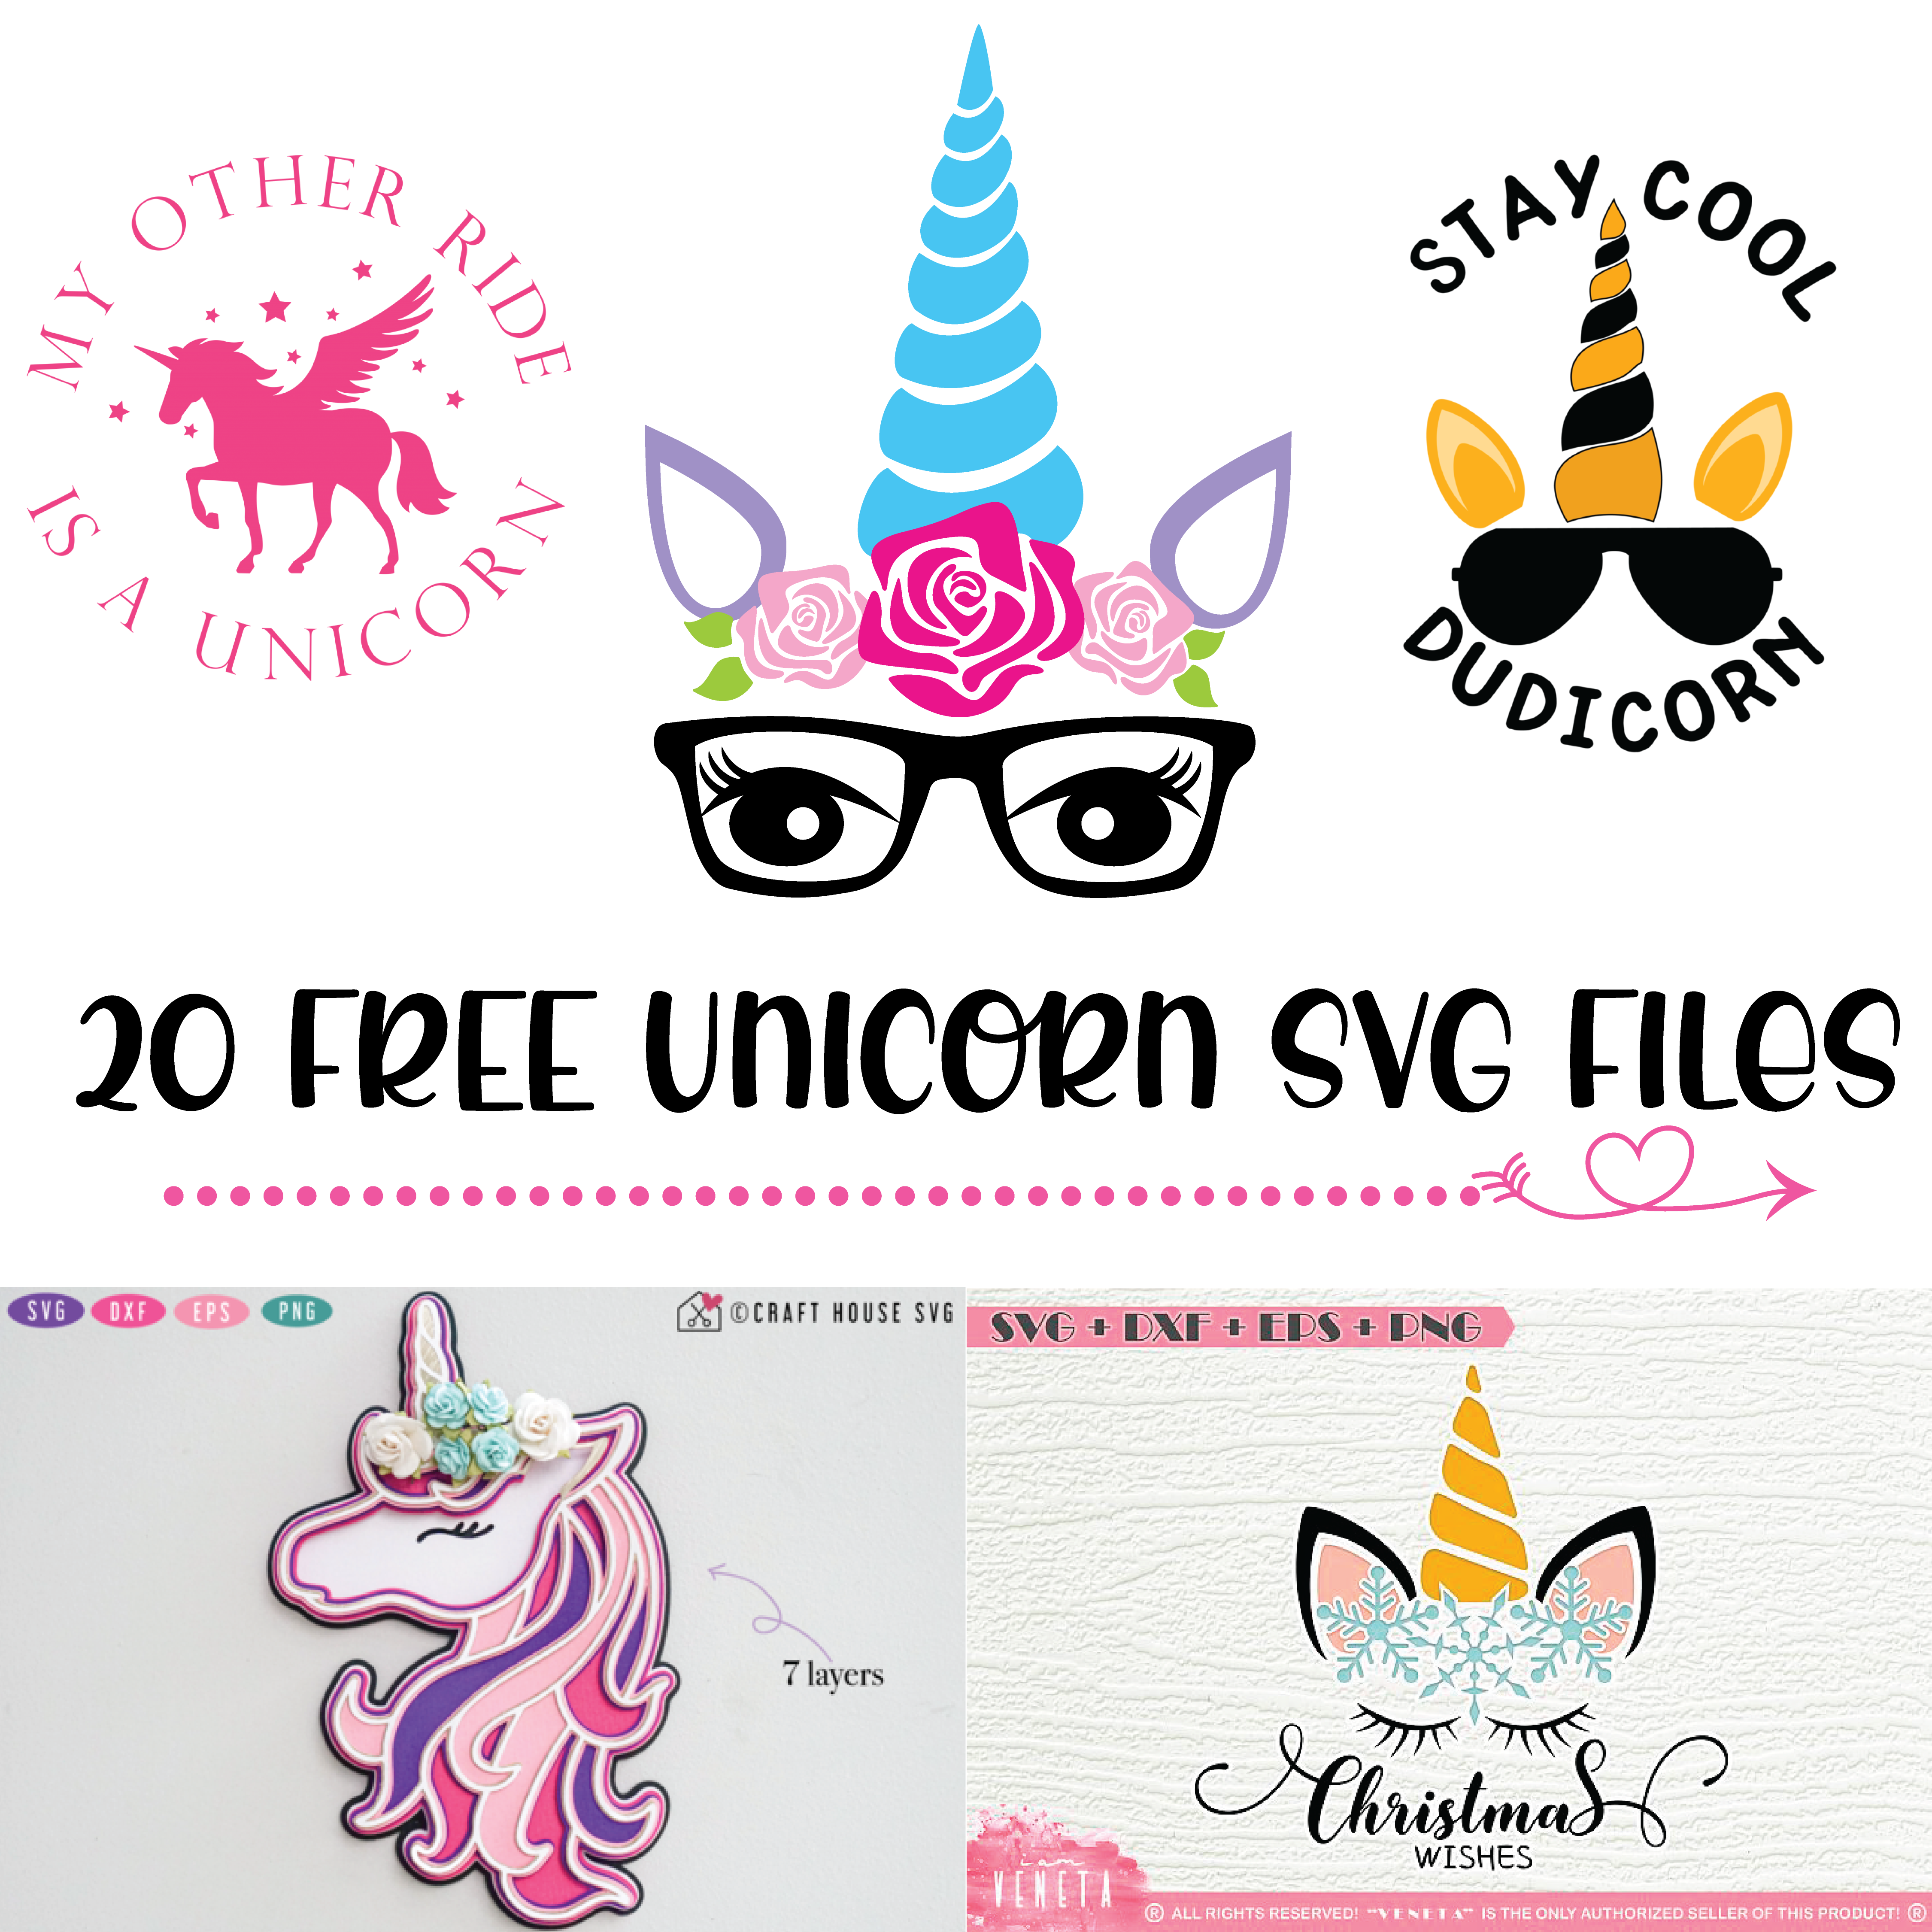 20 Of The Best Free Unicorn Svg Files To Download